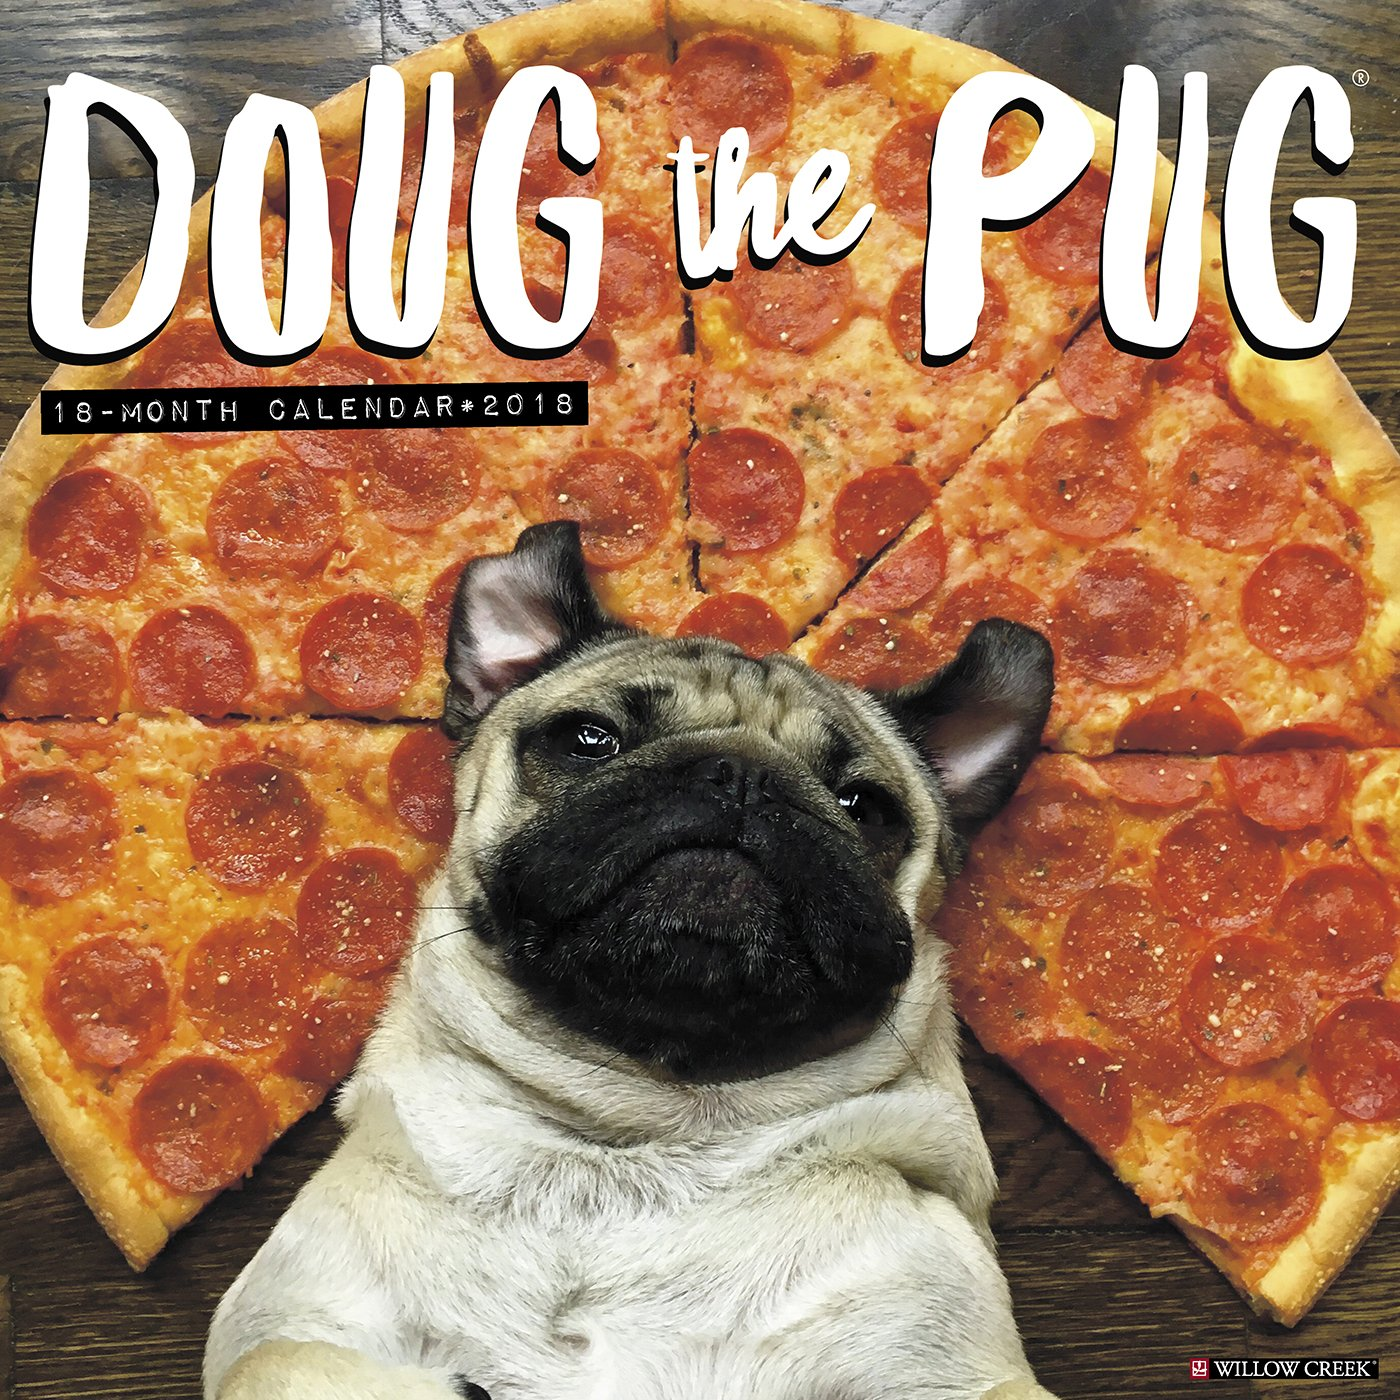 Doug The Pug 2018 Wall Calendar Dog Breed Calendar Leslie Mosier